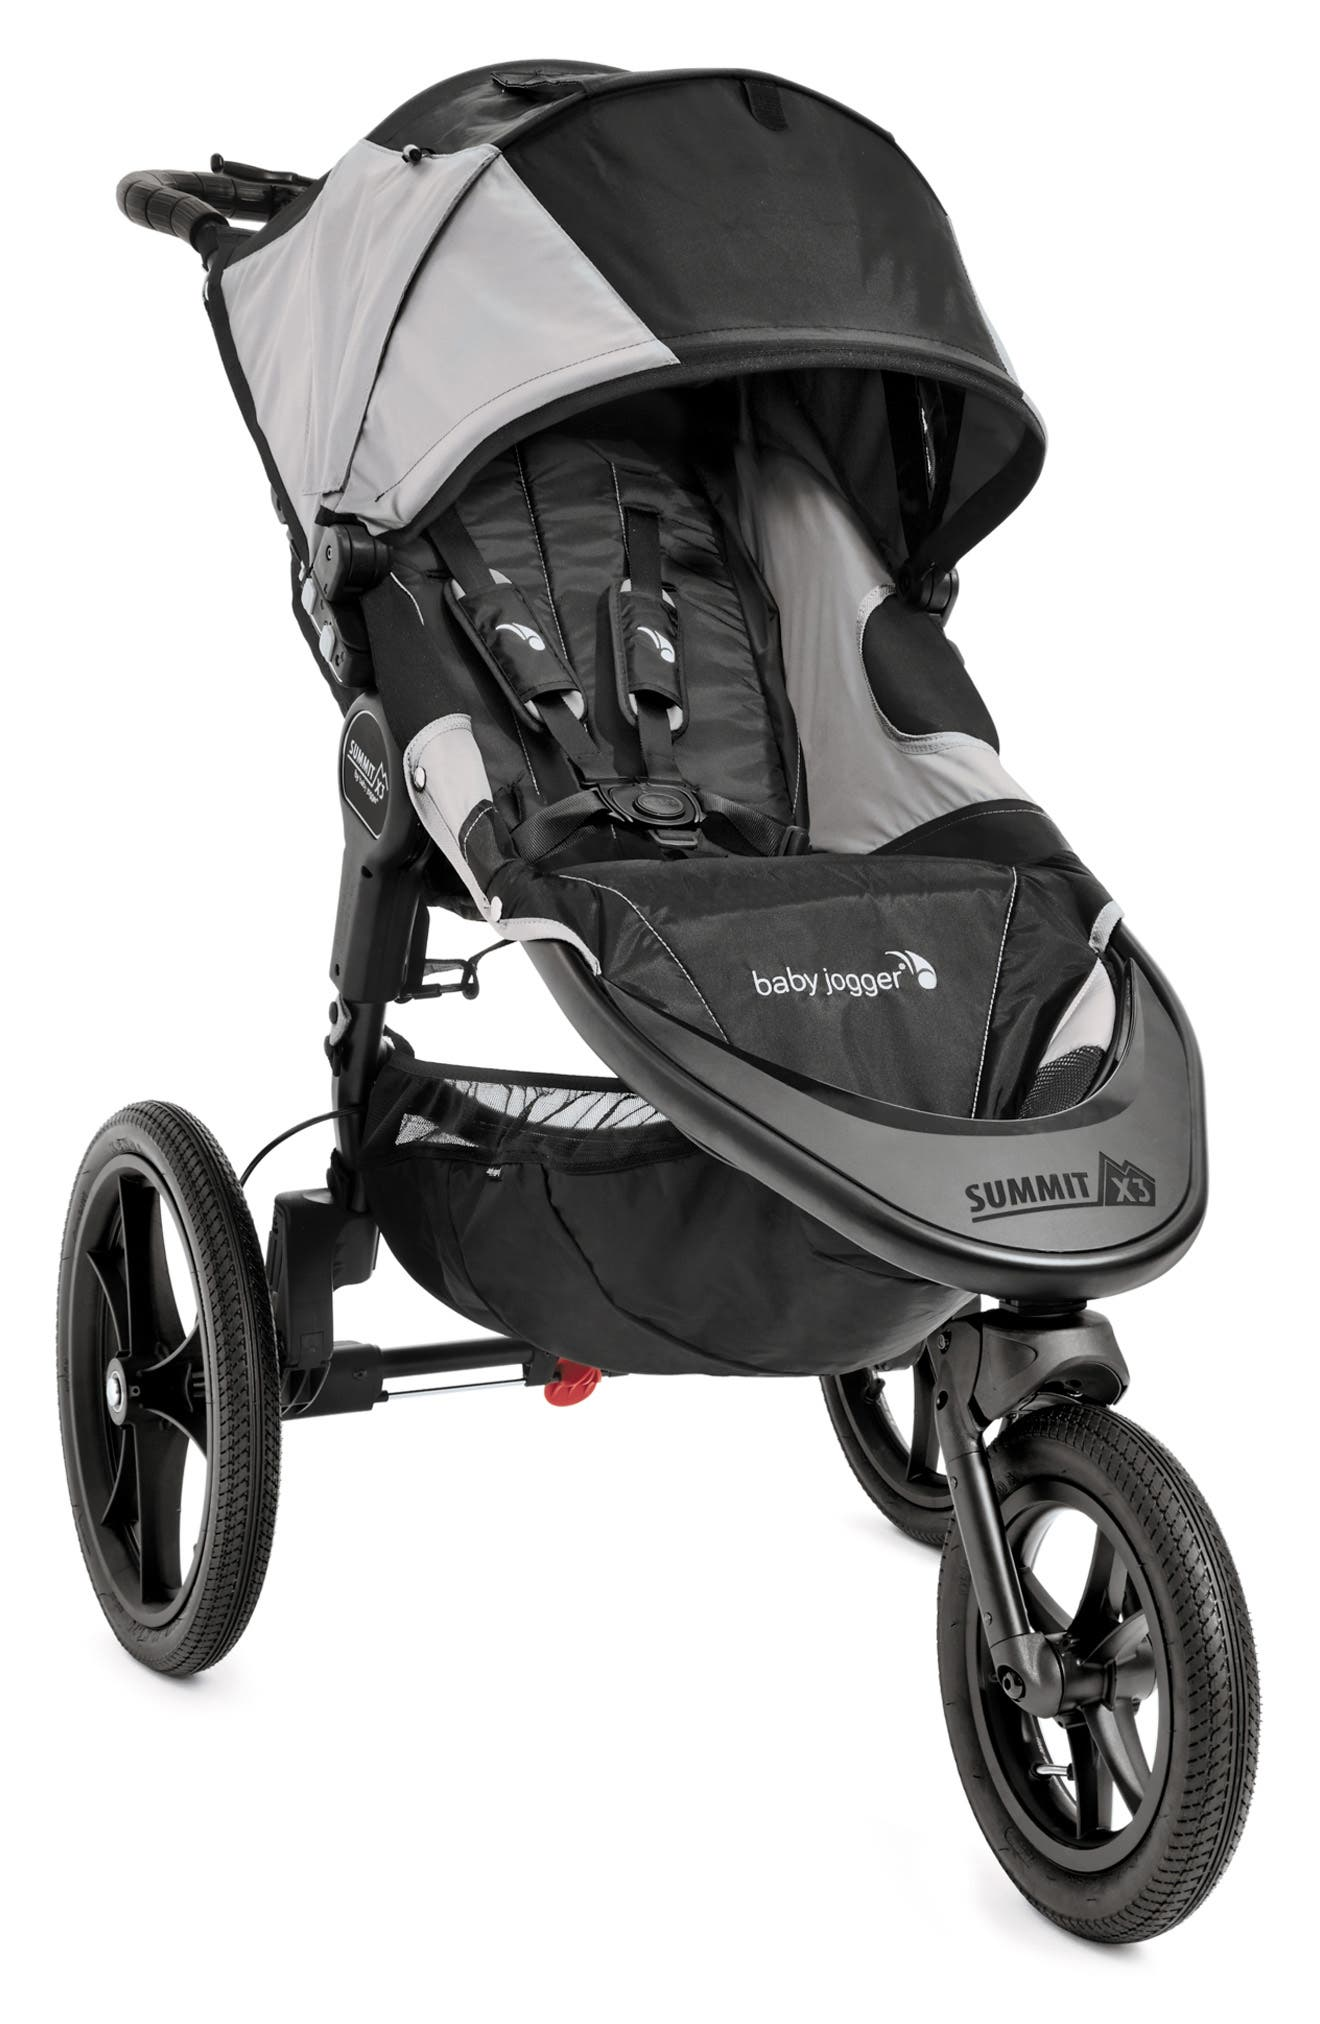 Alternate Image 1 Selected - Baby Jogger Summit X3 Single Jogging Stroller & Weather Shield